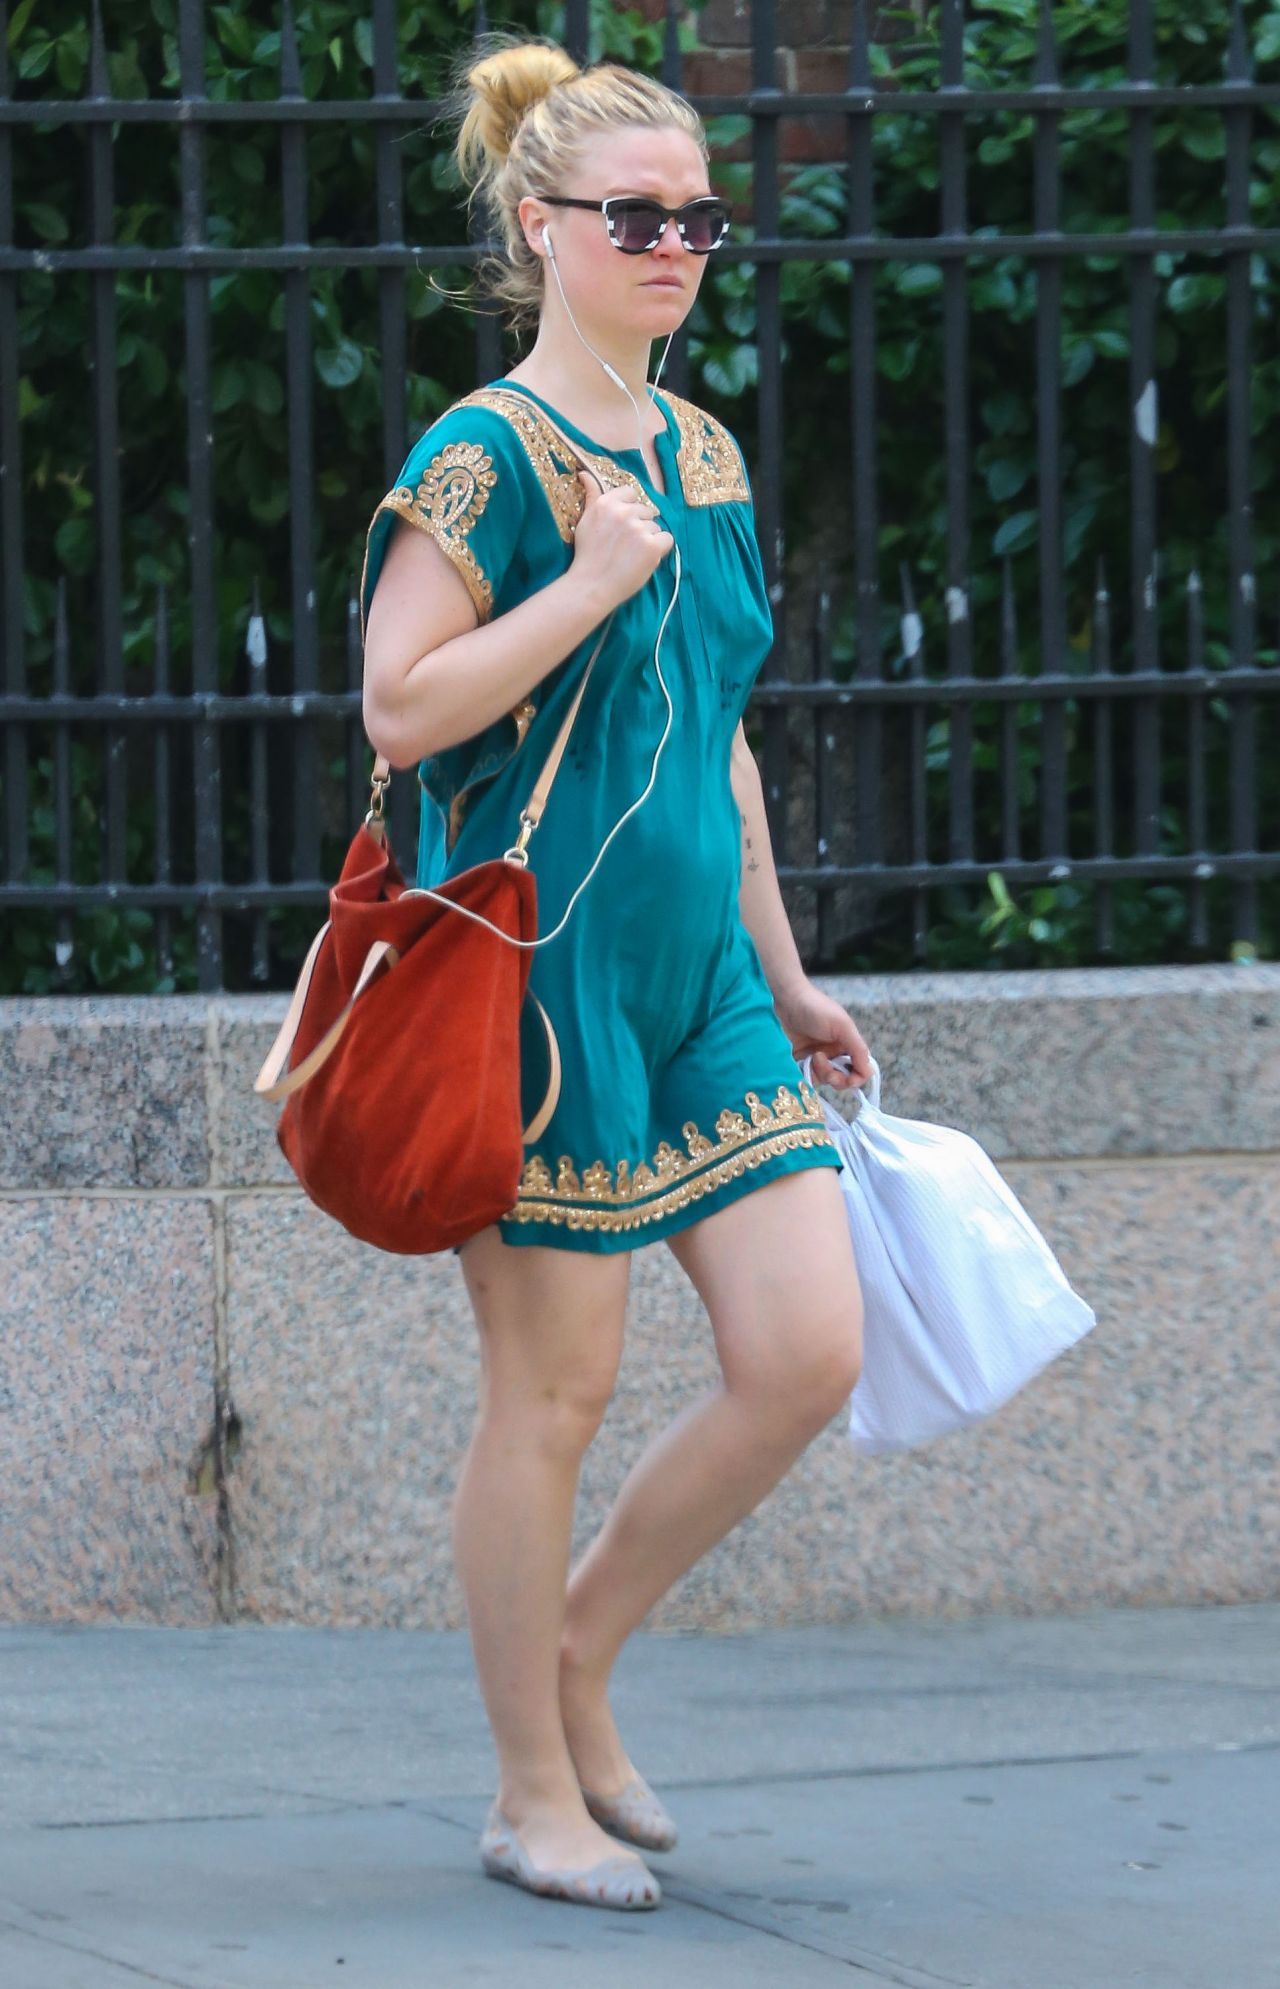 Paparazzi Julia Stiles nudes (45 foto and video), Topless, Fappening, Feet, braless 2015